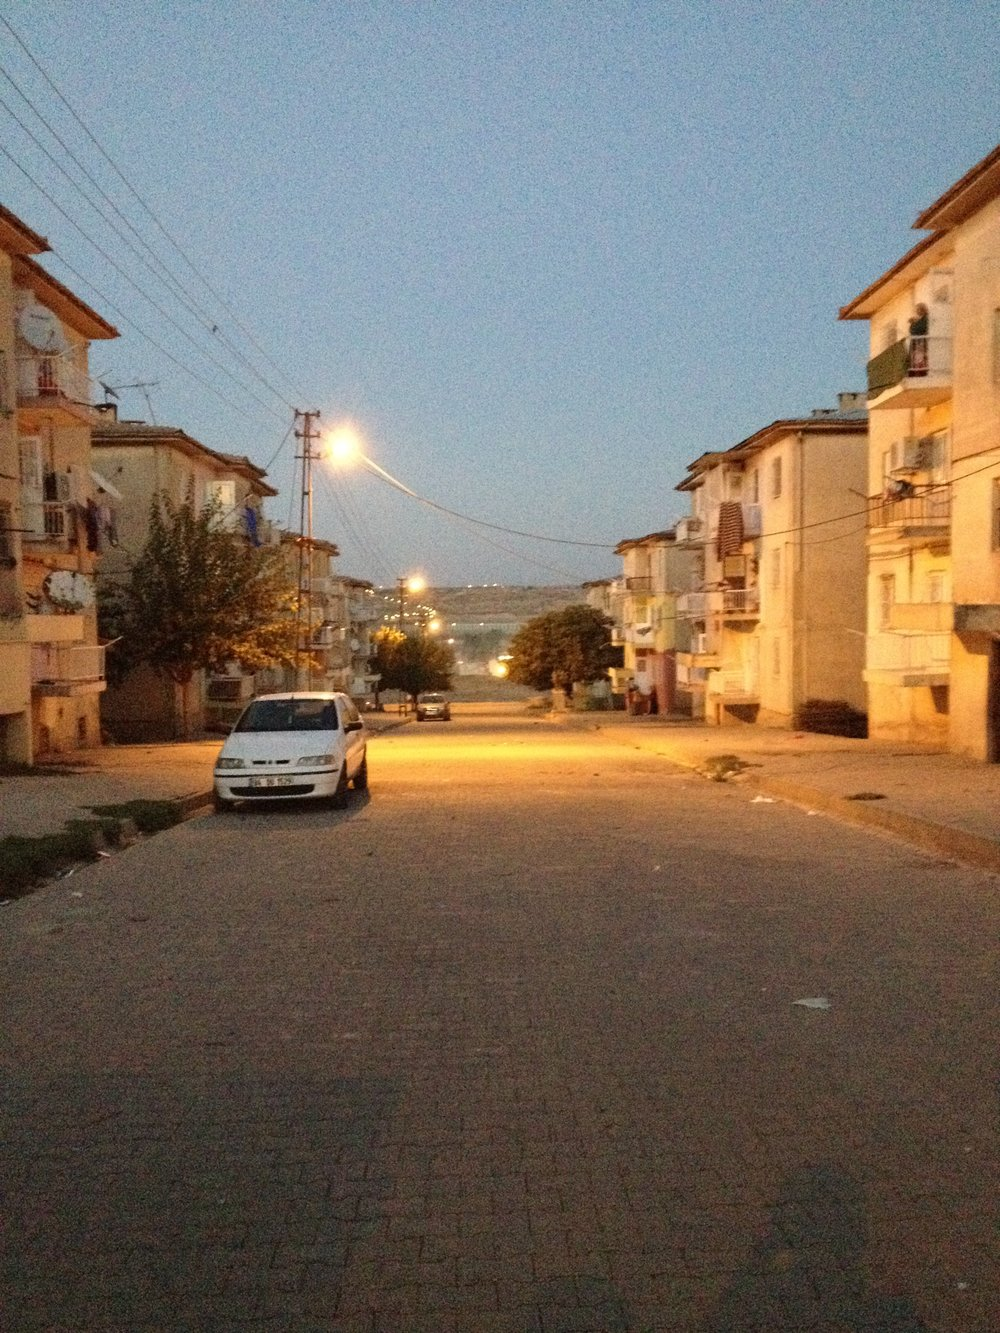 The streets of the refugee camp